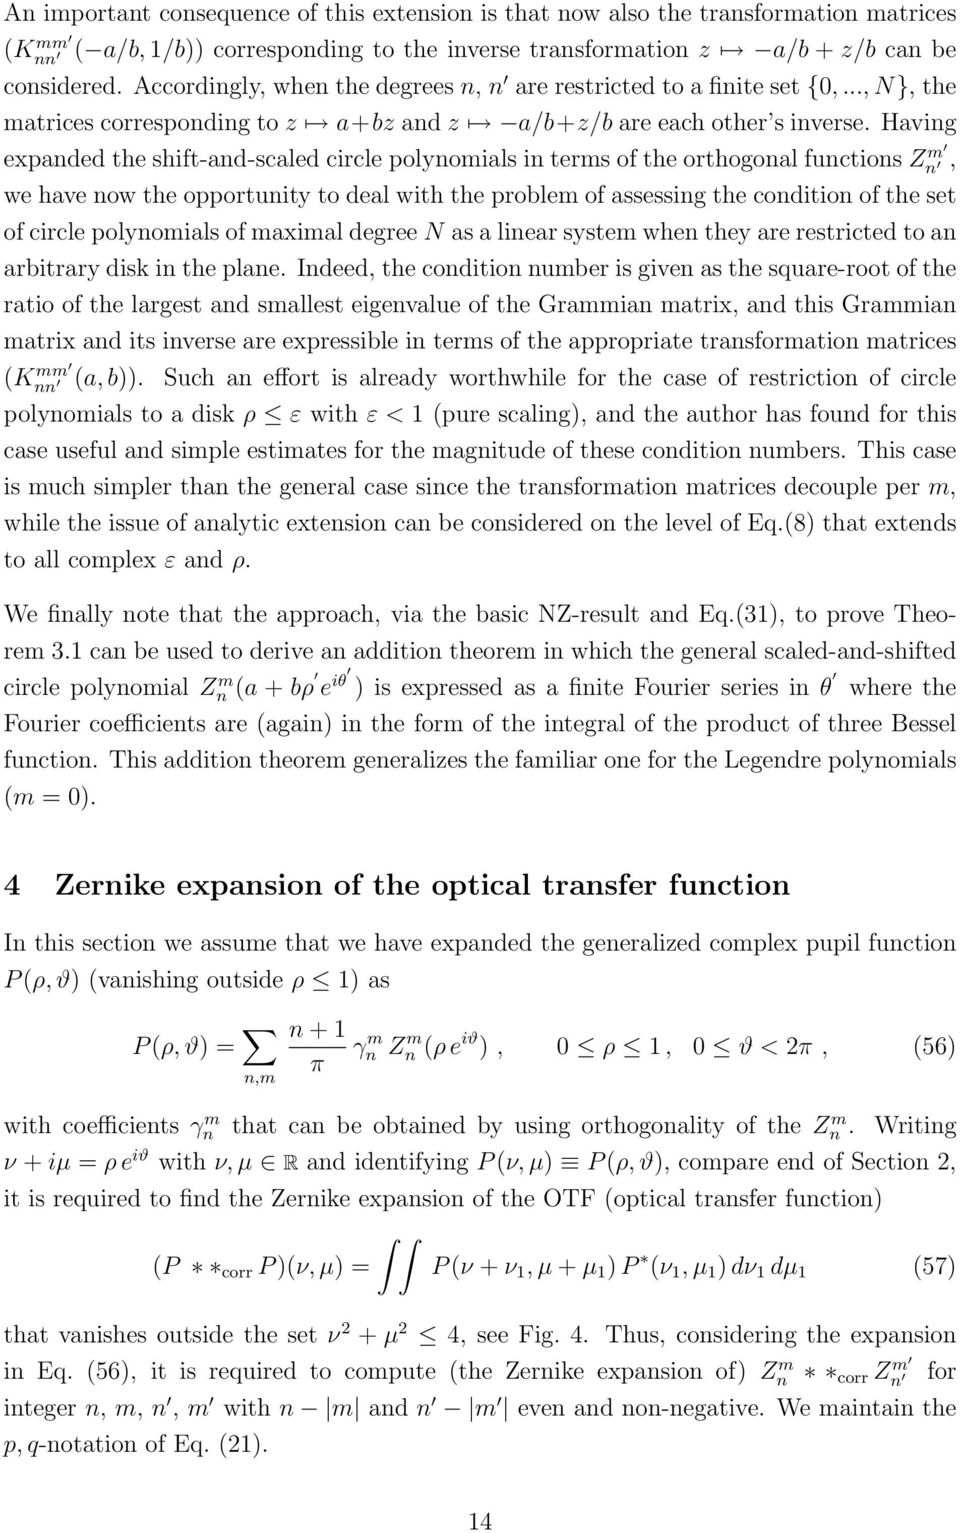 Having expanded the shift-and-scaled circle polynomials in terms of the orthogonal functions Z m n, we have now the opportunity to deal with the problem of assessing the condition of the set of